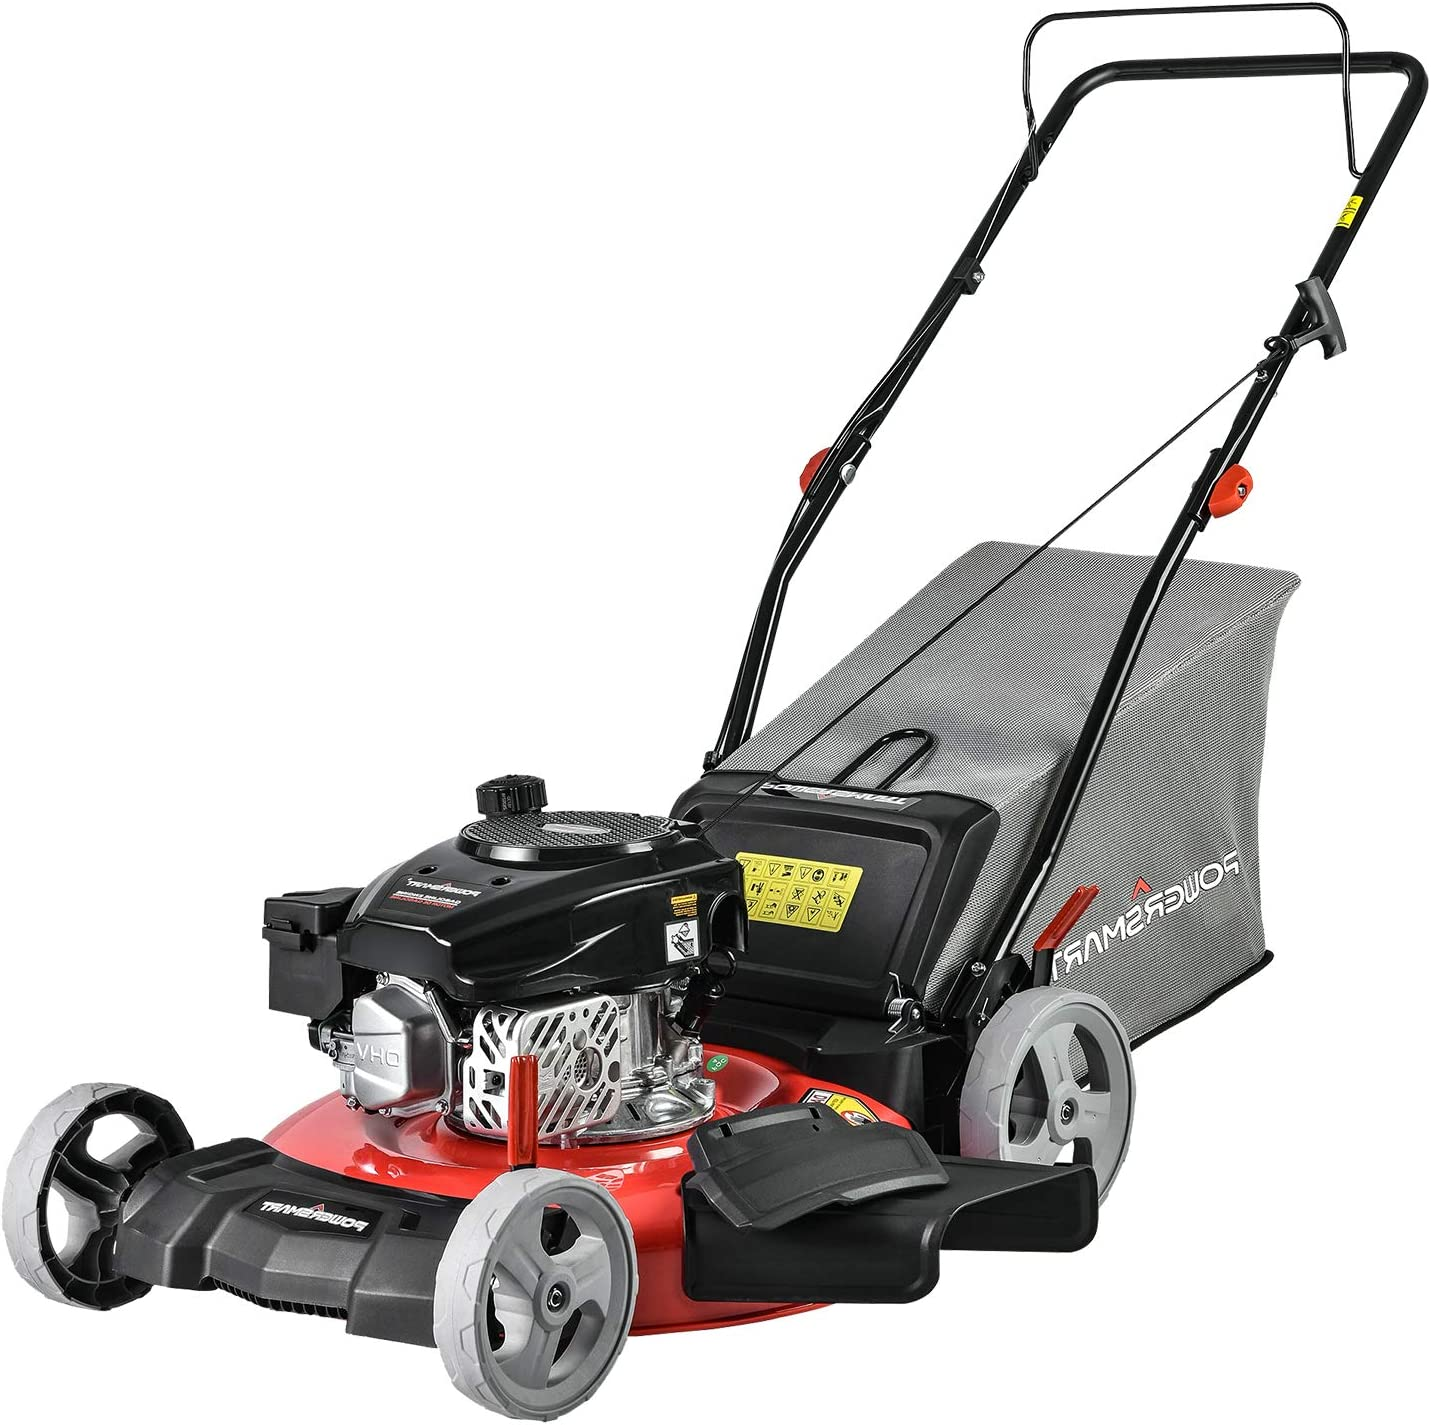 PowerSmart DB2321PR Gas Powered Push Lawn Mower